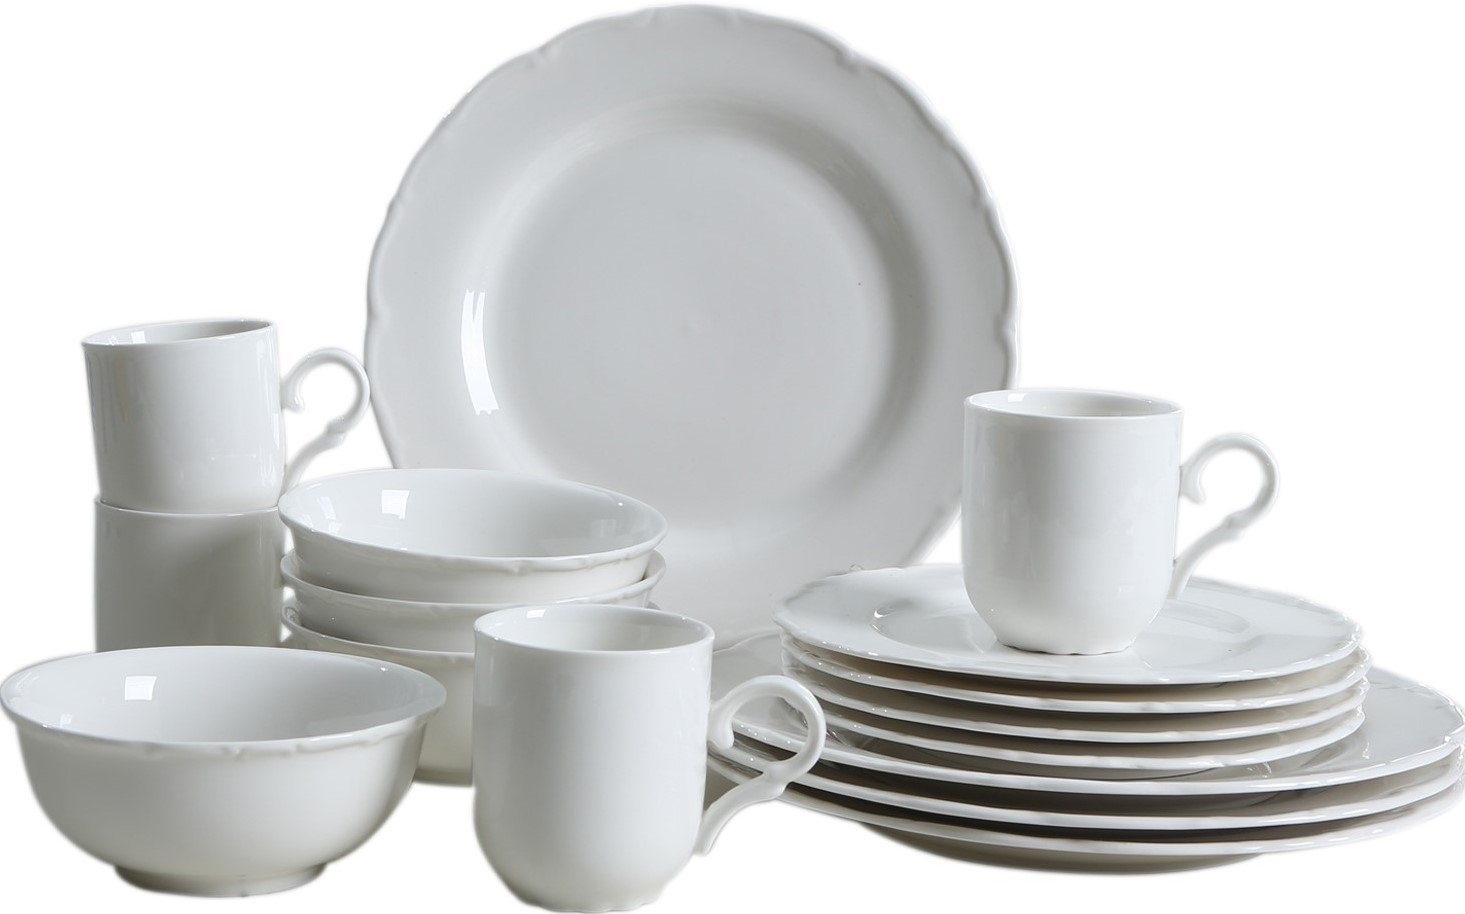 "SOLECASA""16-Piece/Service for 4"" Porcelain/Ceramic Dinnerware and Serveware Set,Ideal Place Setting Set,Round Assorted Dinner Set,Classic White - USAGE: Great for Home & Restaurant use,also can be practical & decent gift to your intimates on holidays. DESIGN: (1)Contemporary style design and Fine finish with nice gloss. (2)Classical winter frost white,well-matched with other tableware. (3)Light with durability,non-slip & non-stick. MATERIAL: Made of high quality porcelain/ceramic,healthy & sturdy for daily use,and very easy to clean. - kitchen-tabletop, kitchen-dining-room, dinnerware-sets - 61FS040haVL -"